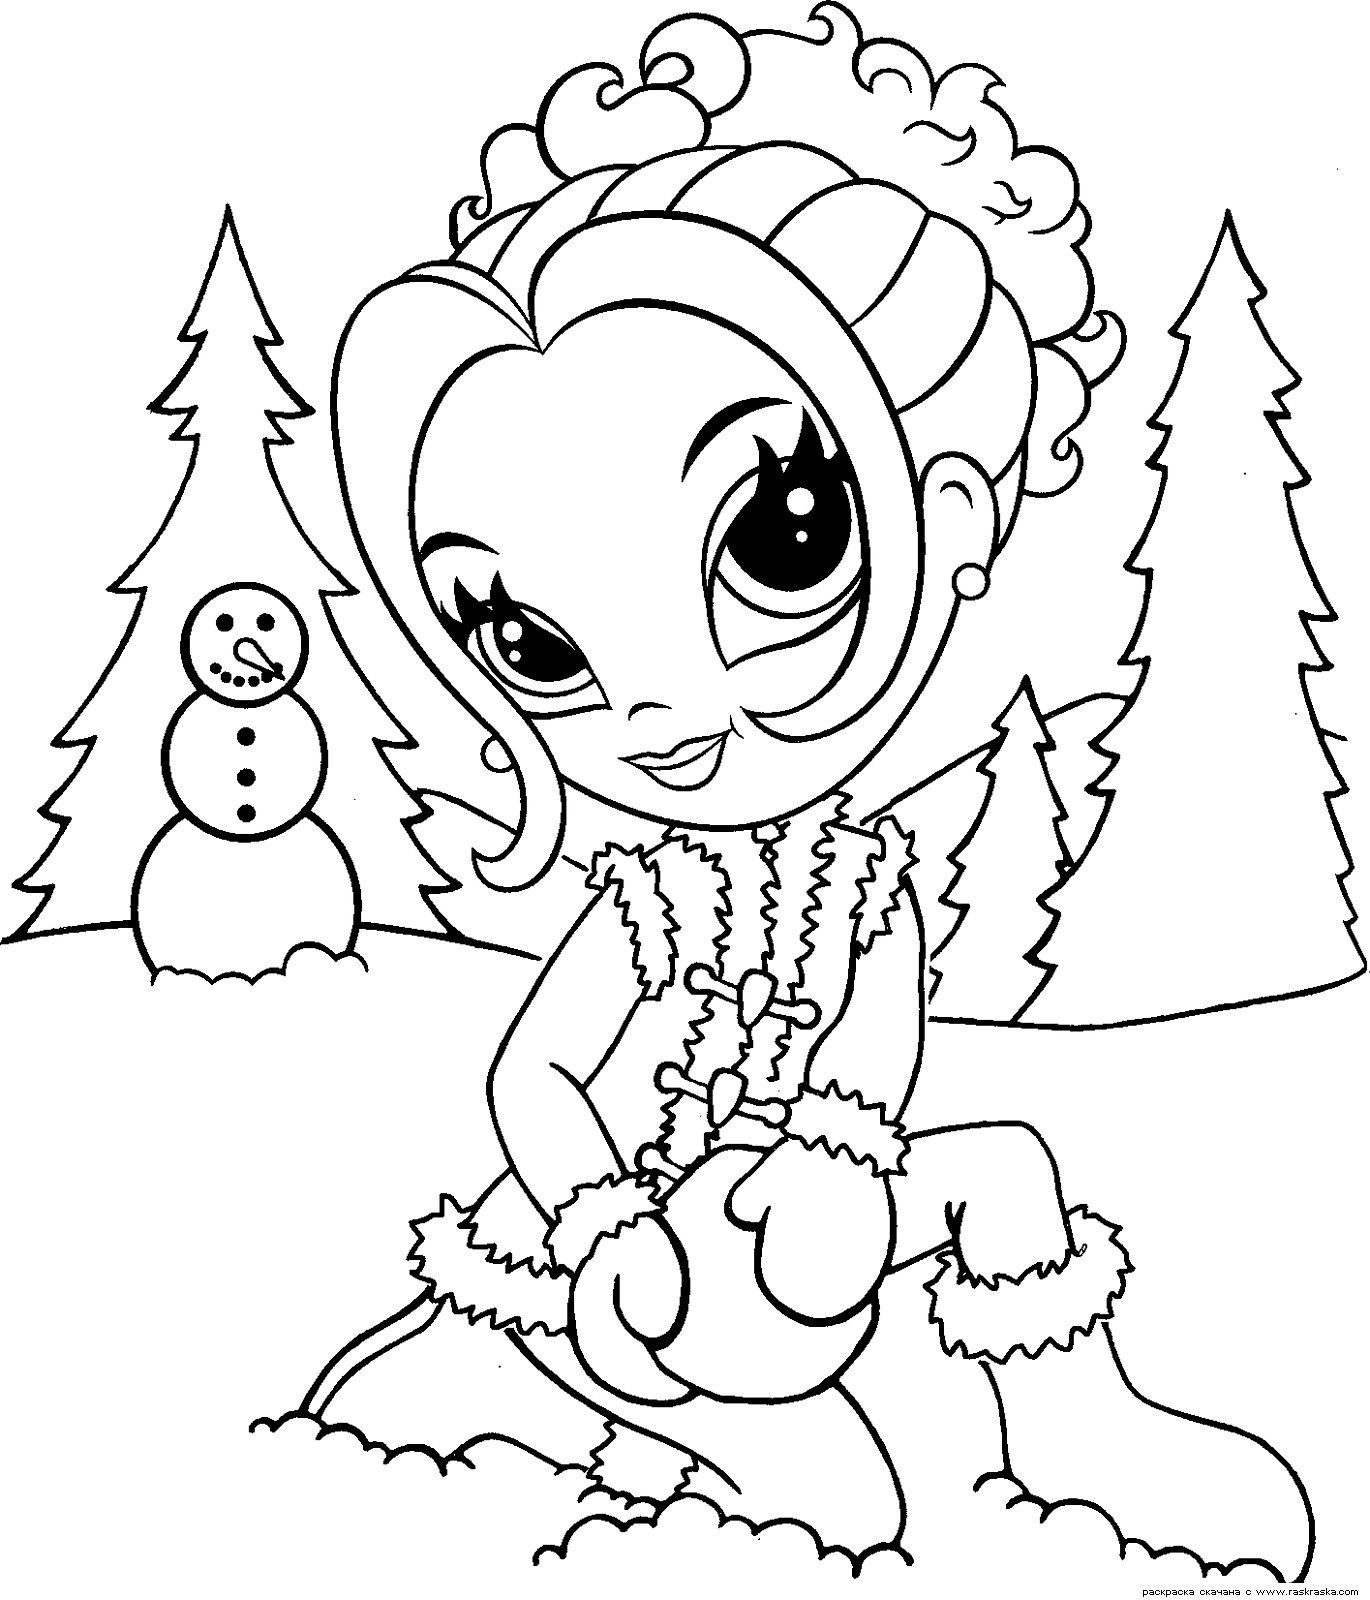 This is an image of Wild Lisa Frank Coloring Book